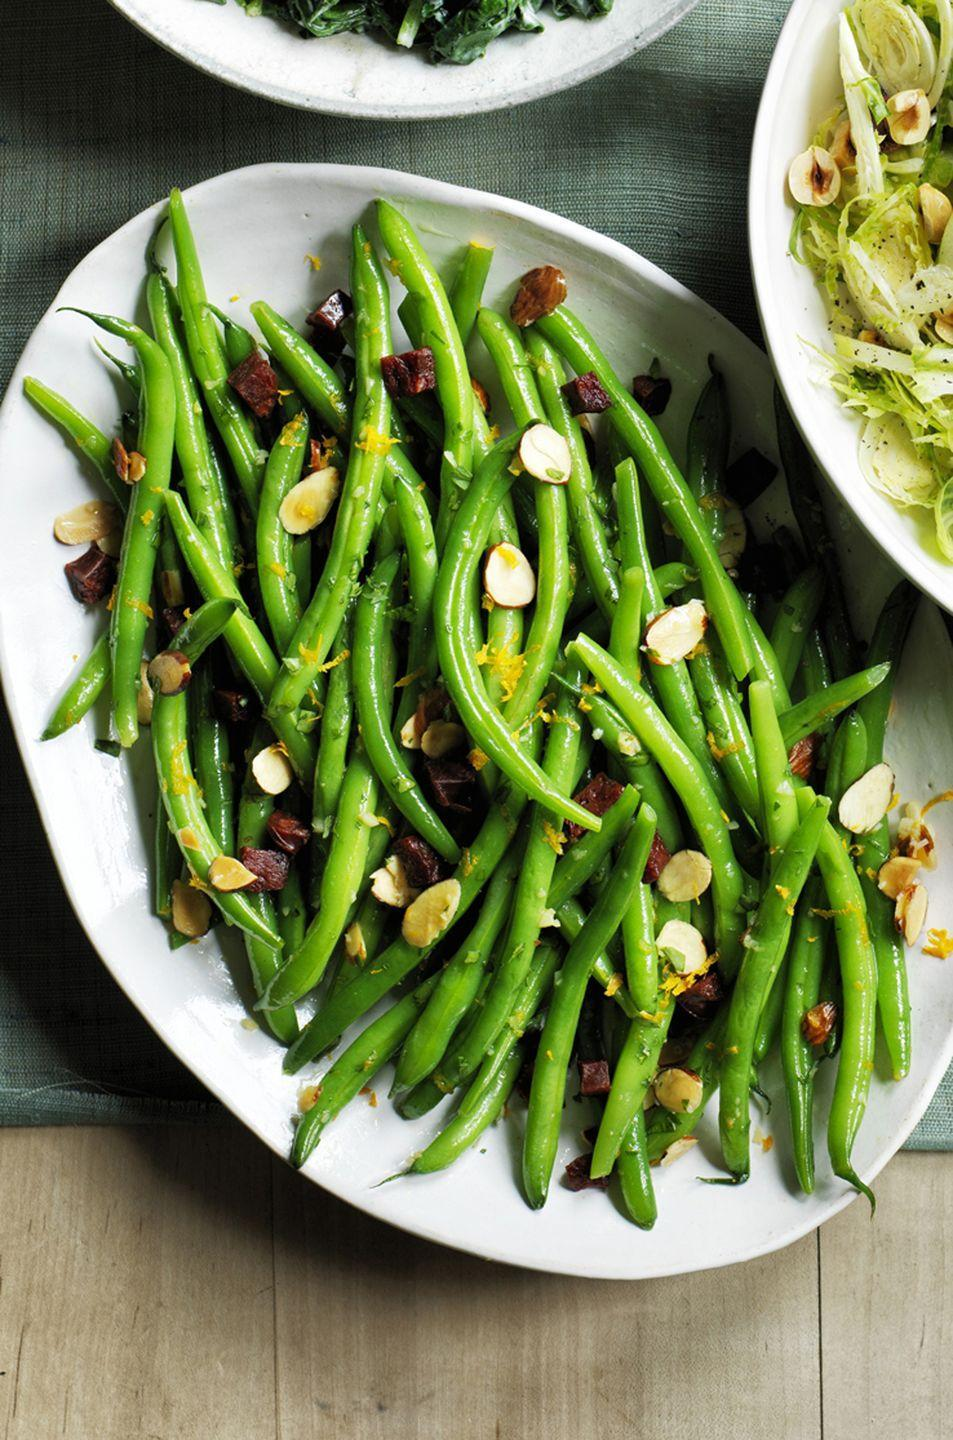 """<p>Instead of a classic green bean casserole, beef up your the thin beans with chorizo. </p><p><em><strong><a href=""""https://www.womansday.com/food-recipes/food-drinks/recipes/a60489/green-beans-with-chorizo-and-almond-crumbs-recipe/"""" rel=""""nofollow noopener"""" target=""""_blank"""" data-ylk=""""slk:Get the Green Beans with Chorizo and Almond Crumbs recipe."""" class=""""link rapid-noclick-resp"""">Get the Green Beans with Chorizo and Almond Crumbs recipe.</a></strong></em></p>"""